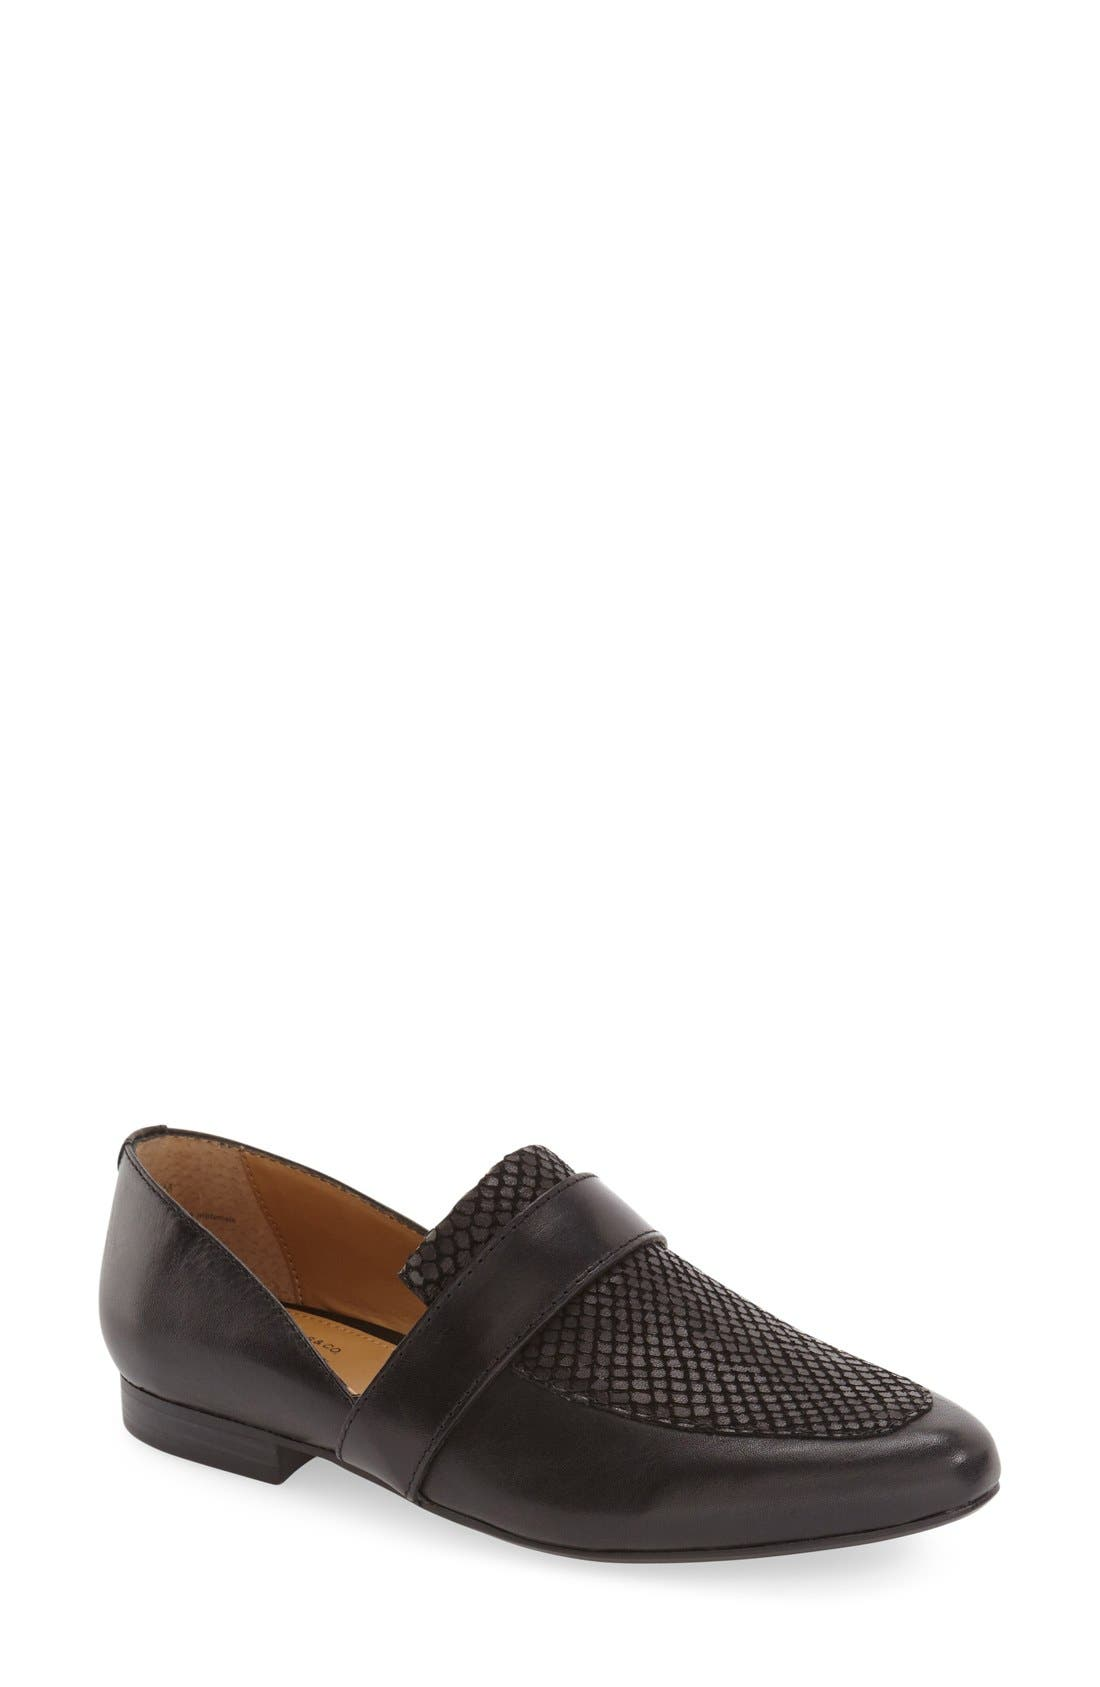 'Hilary' Leather Loafer,                         Main,                         color, Black Leather